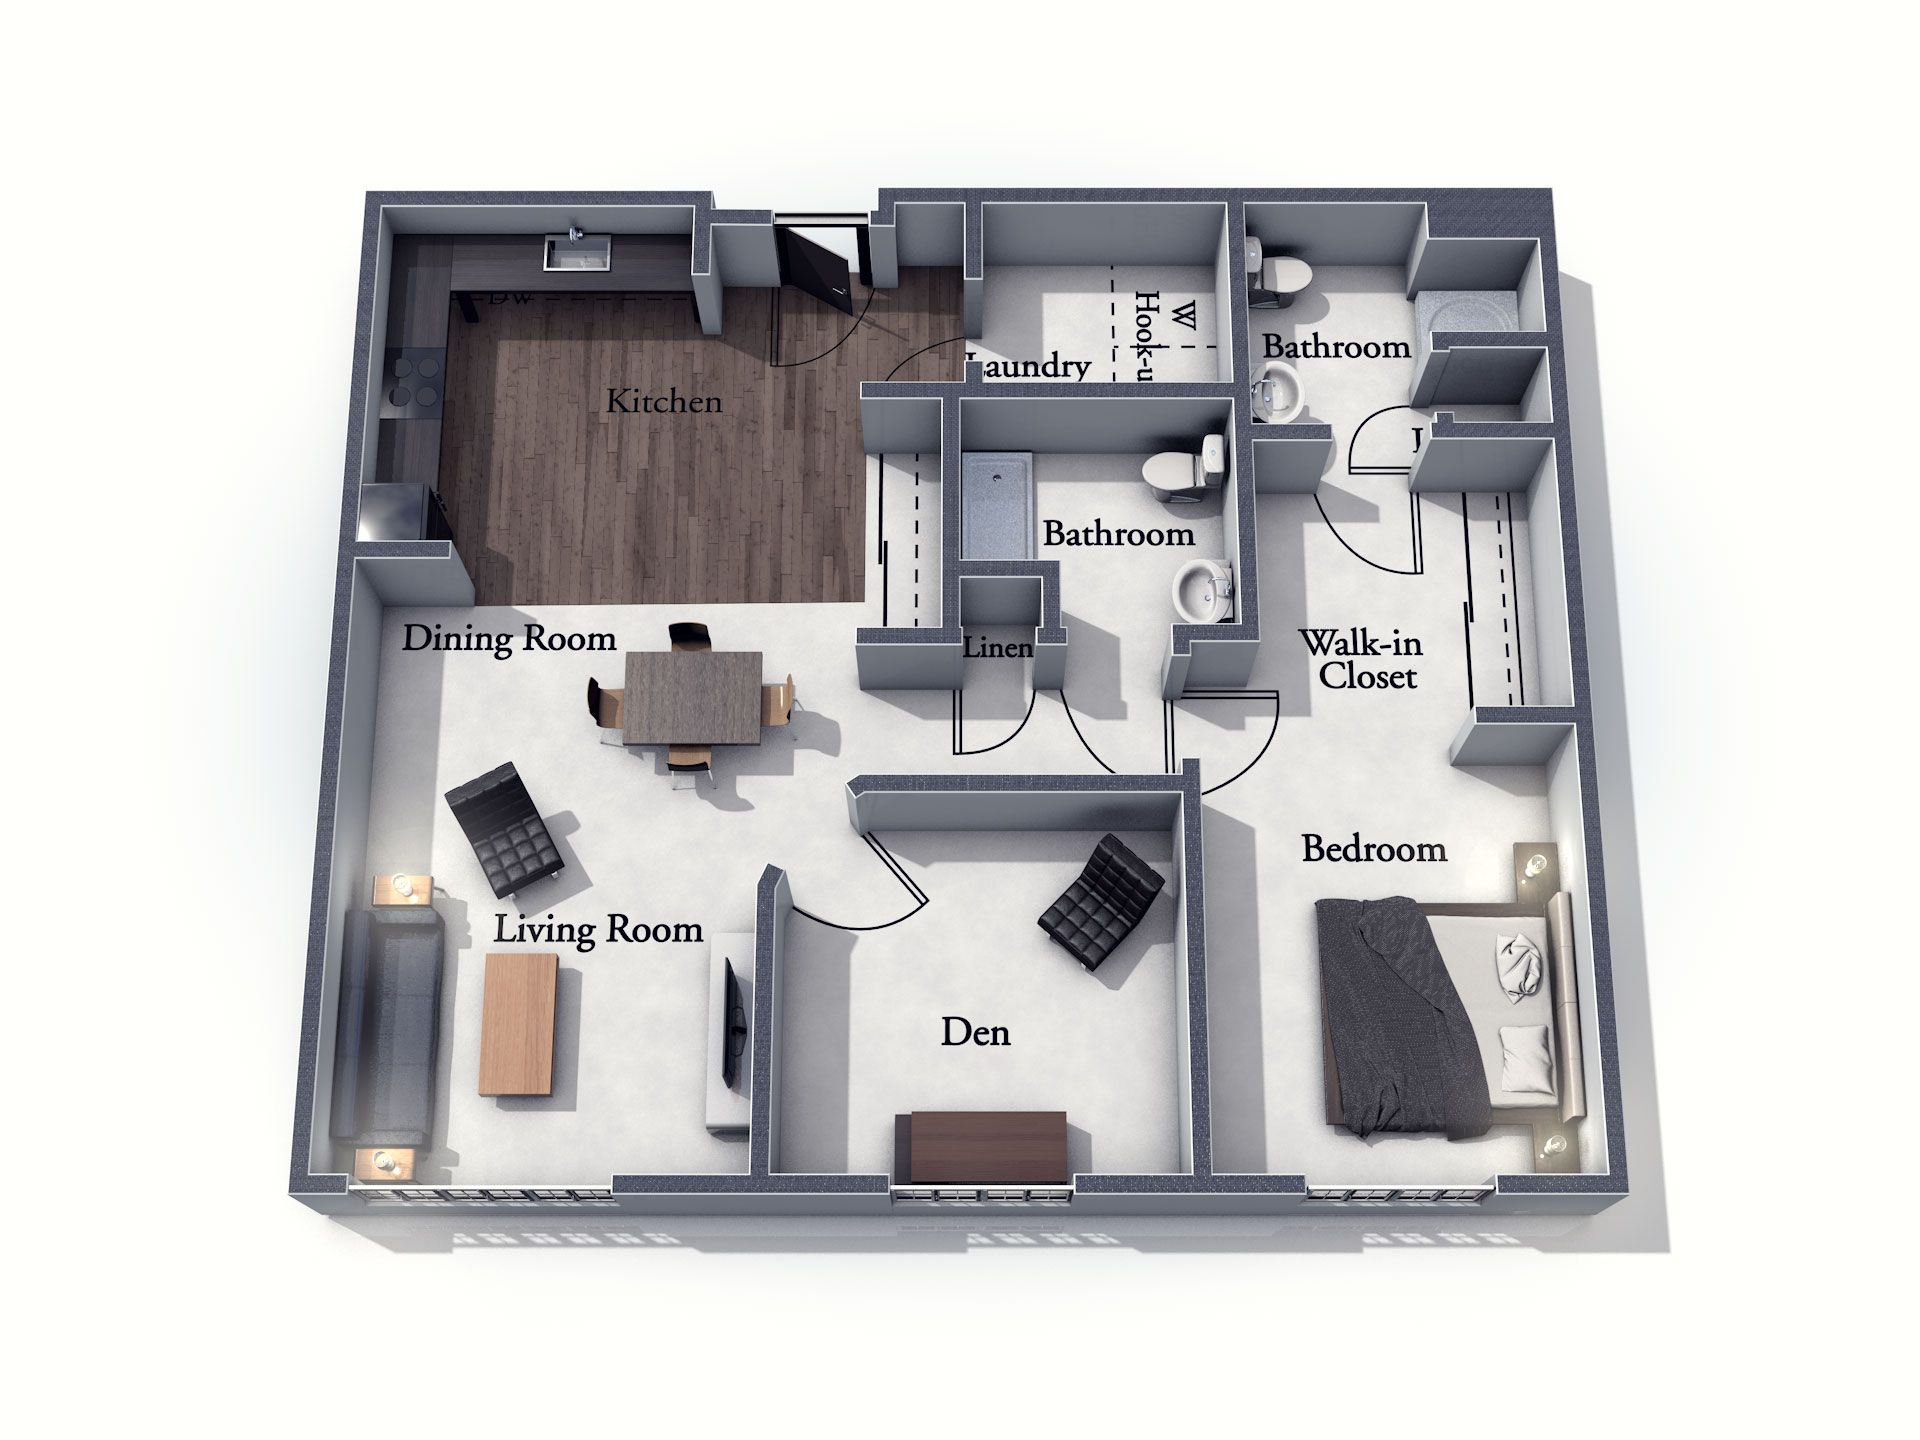 This 3D rendering of the Aylesbury living space shows an example of the floor plan layout. Please contact the Summit Pointe Senior Living Community for more information.